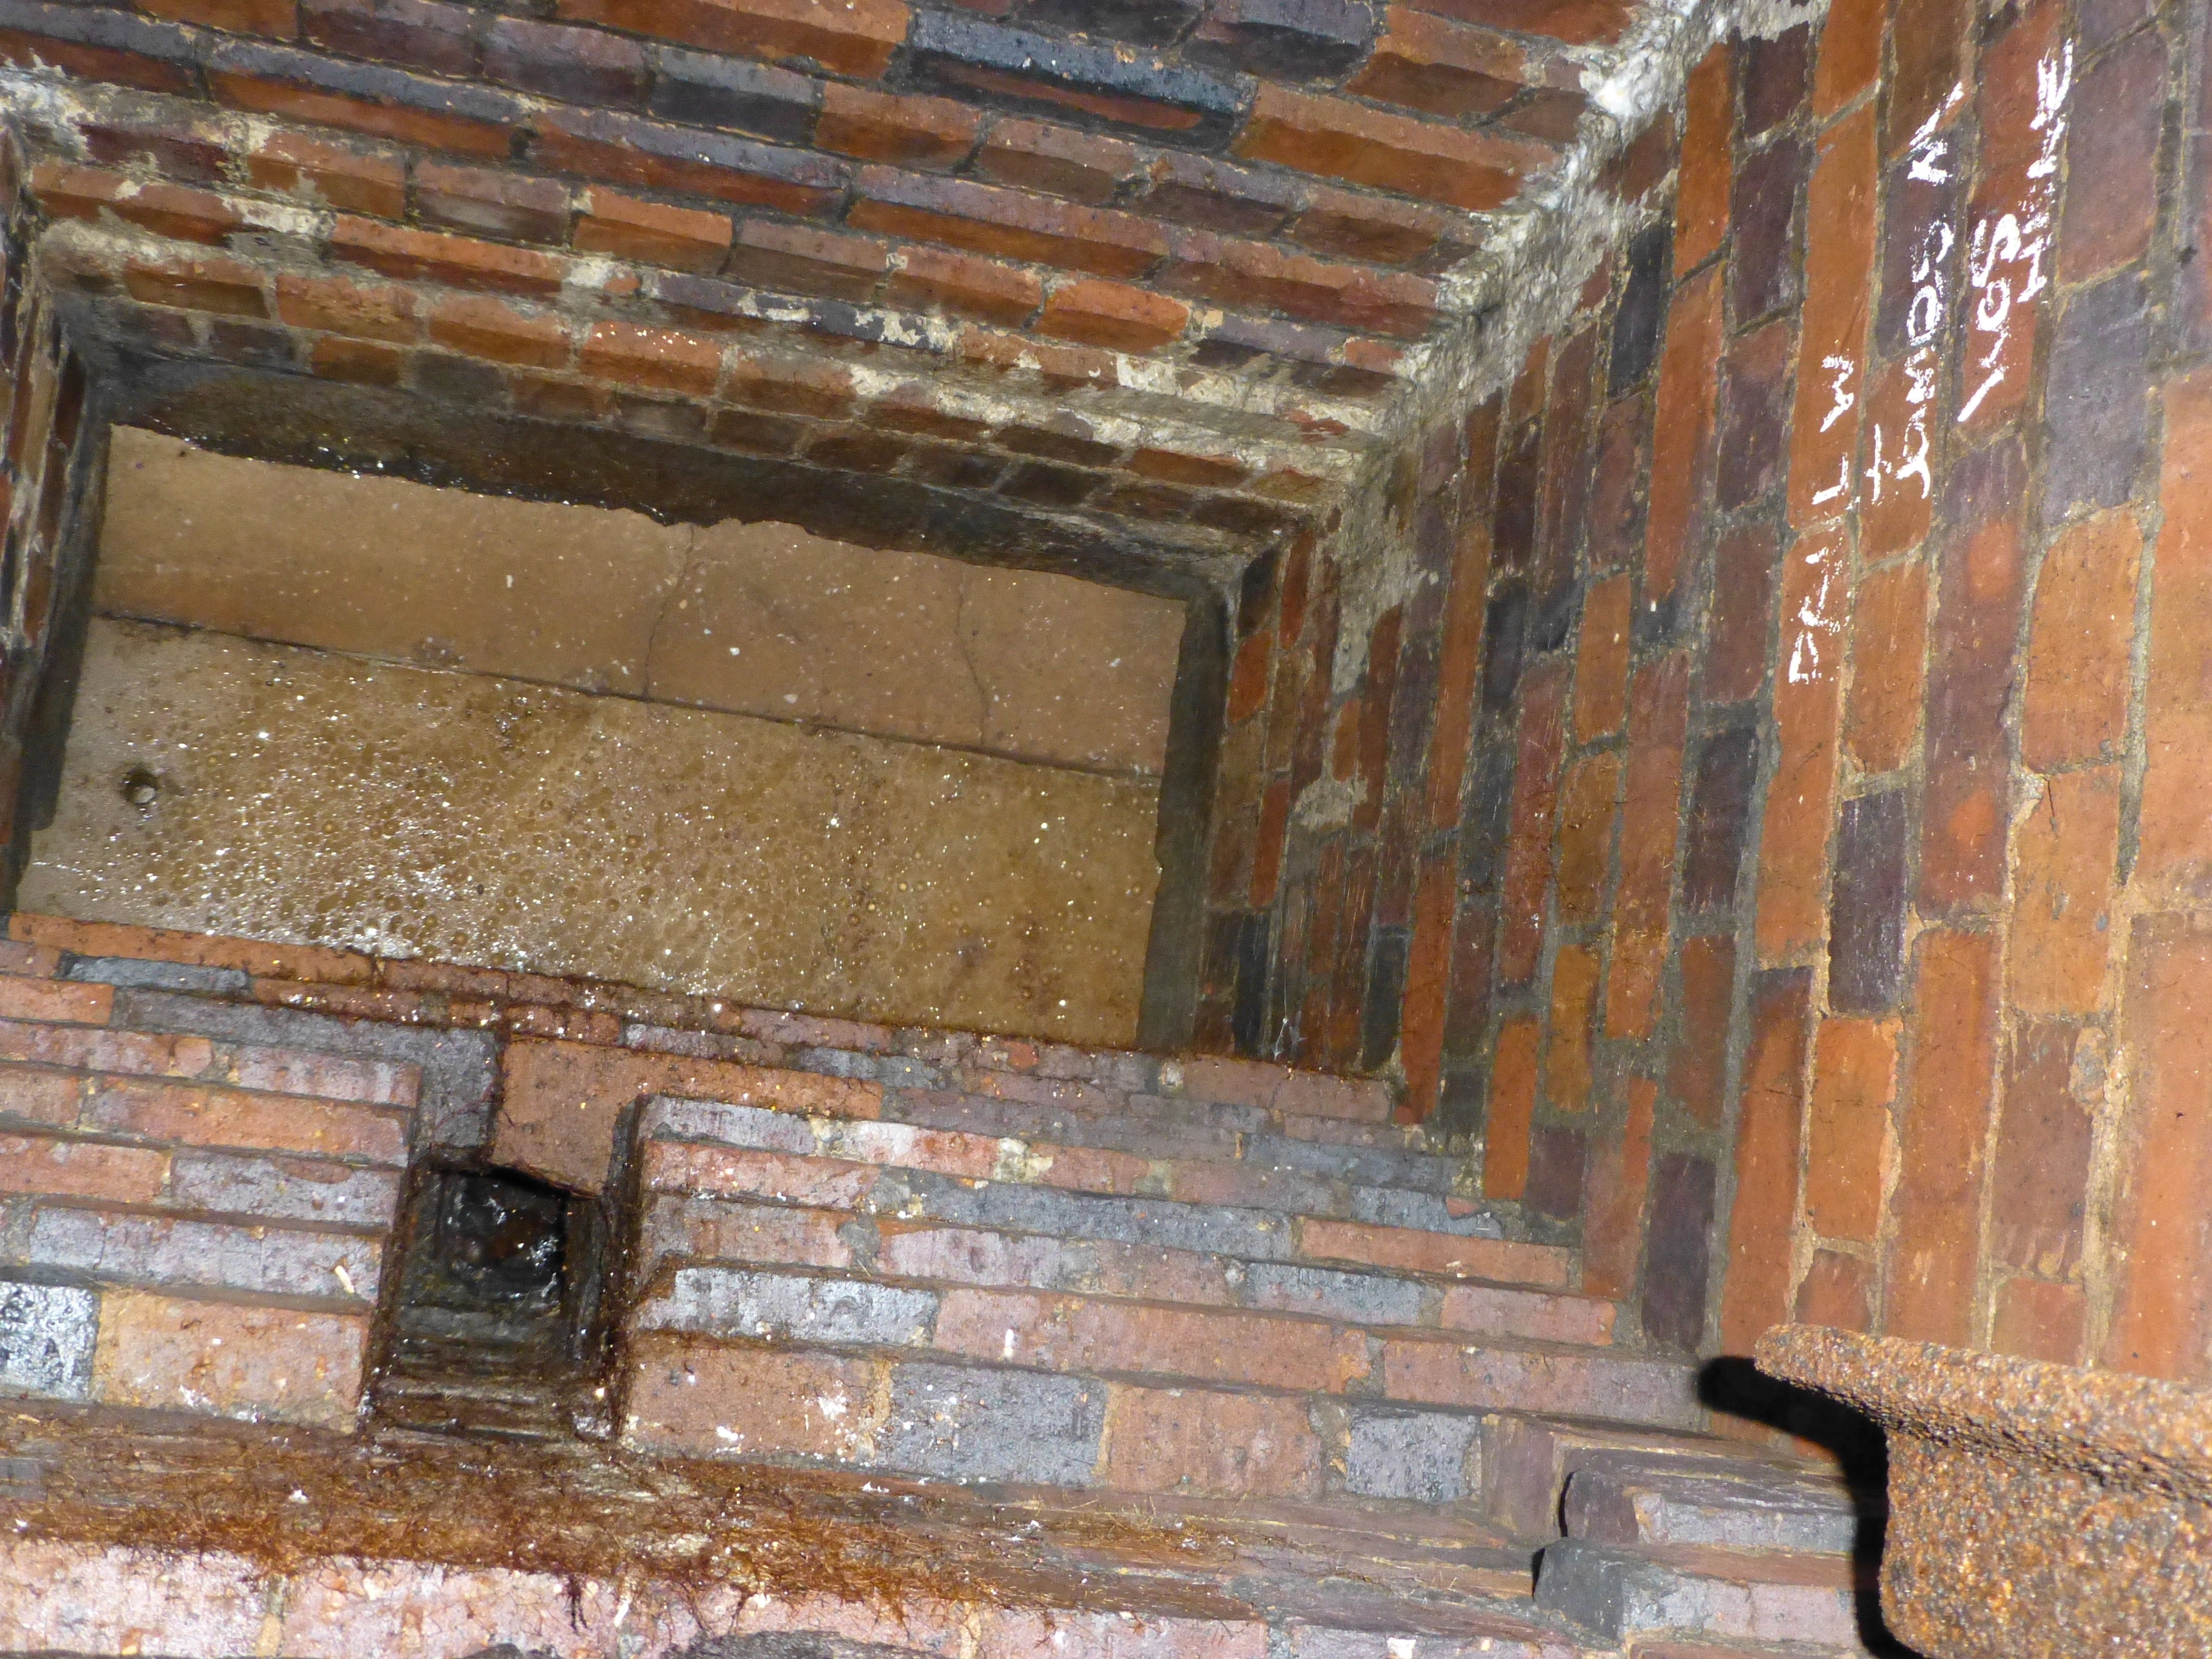 Looking upwards to ground level above the chamber. The top is blocked with planks or slabs, and there are guide rails and a control channel for the gate mechanism.